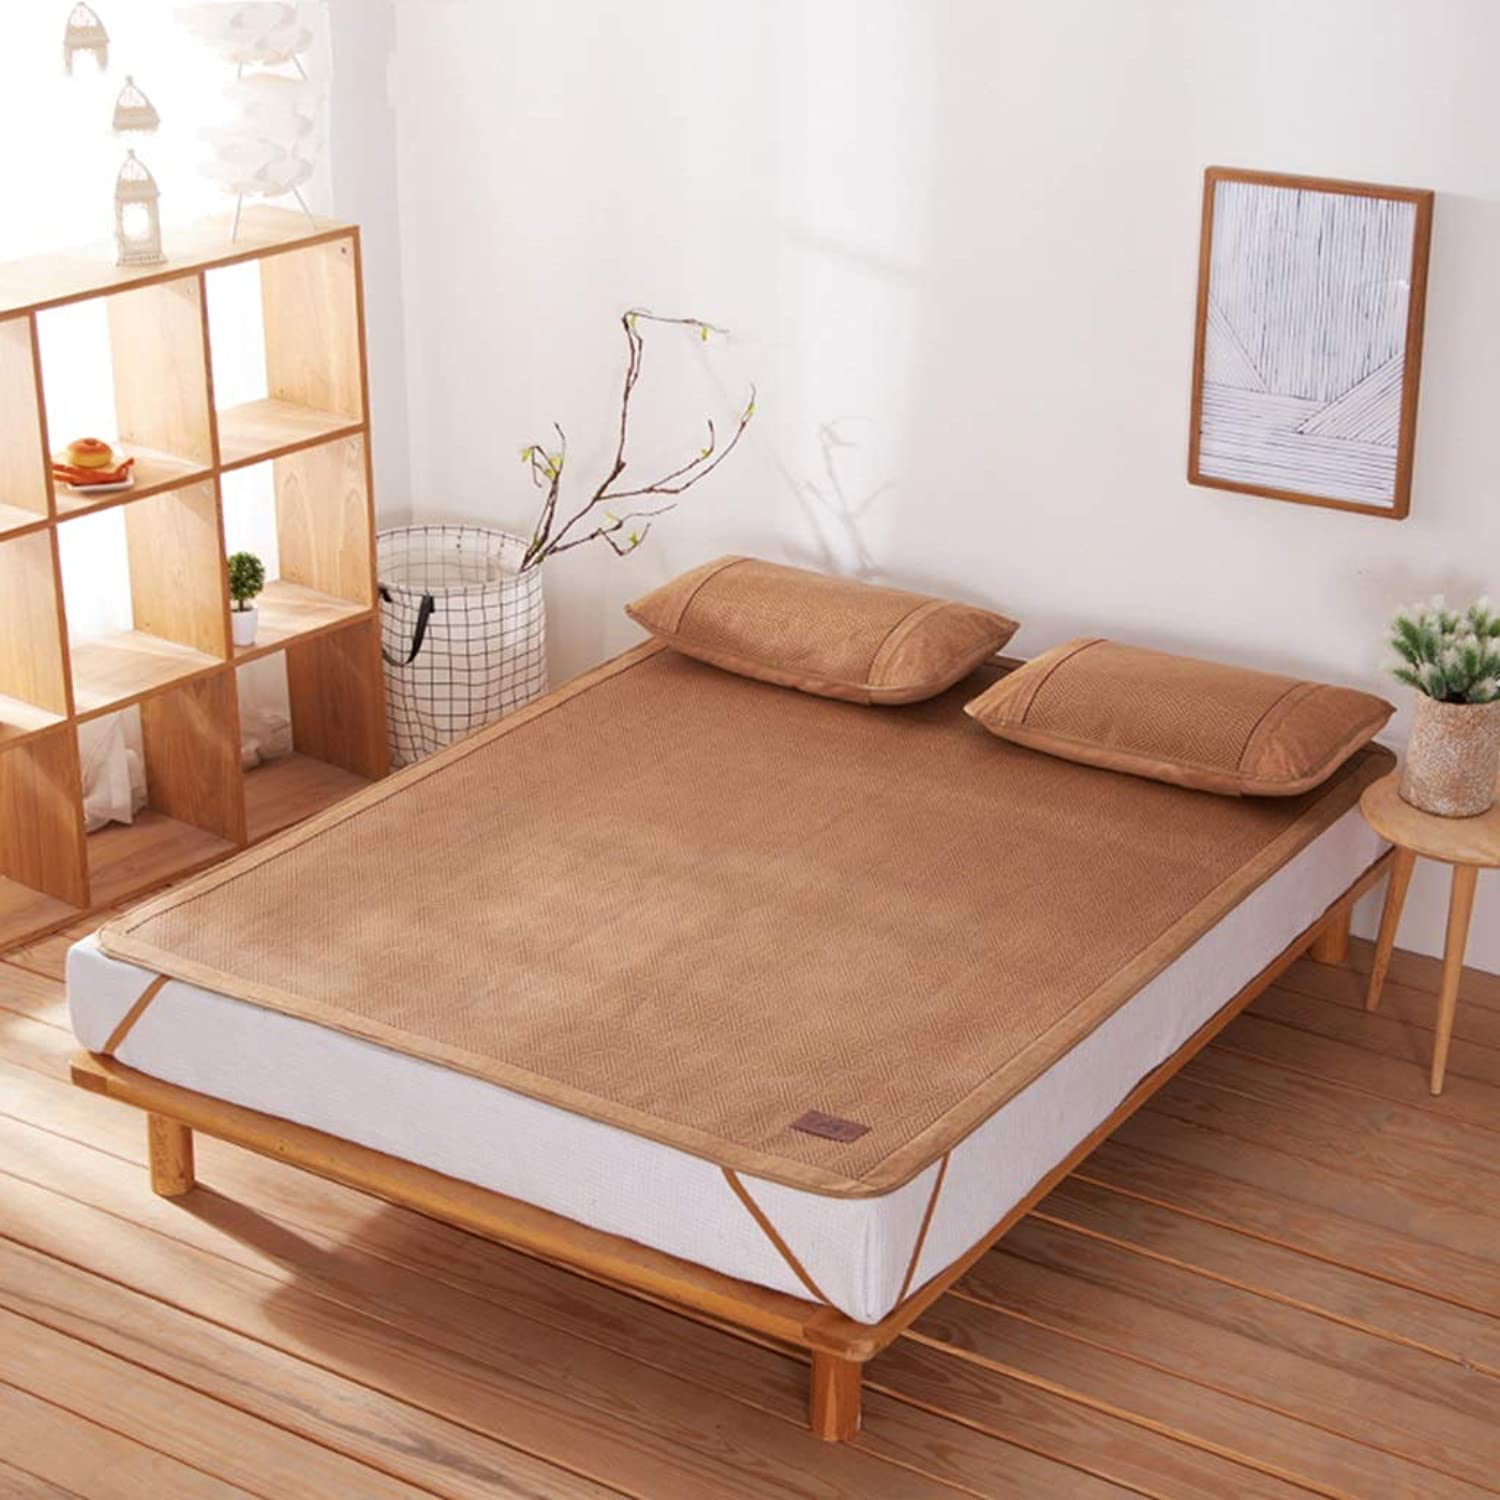 Vine Mat Bamboo Mat Ice Silk Double Bed Foldable (1.5 M Bed   1.8 M Bed) (color   Brown, Size   150  195cm)